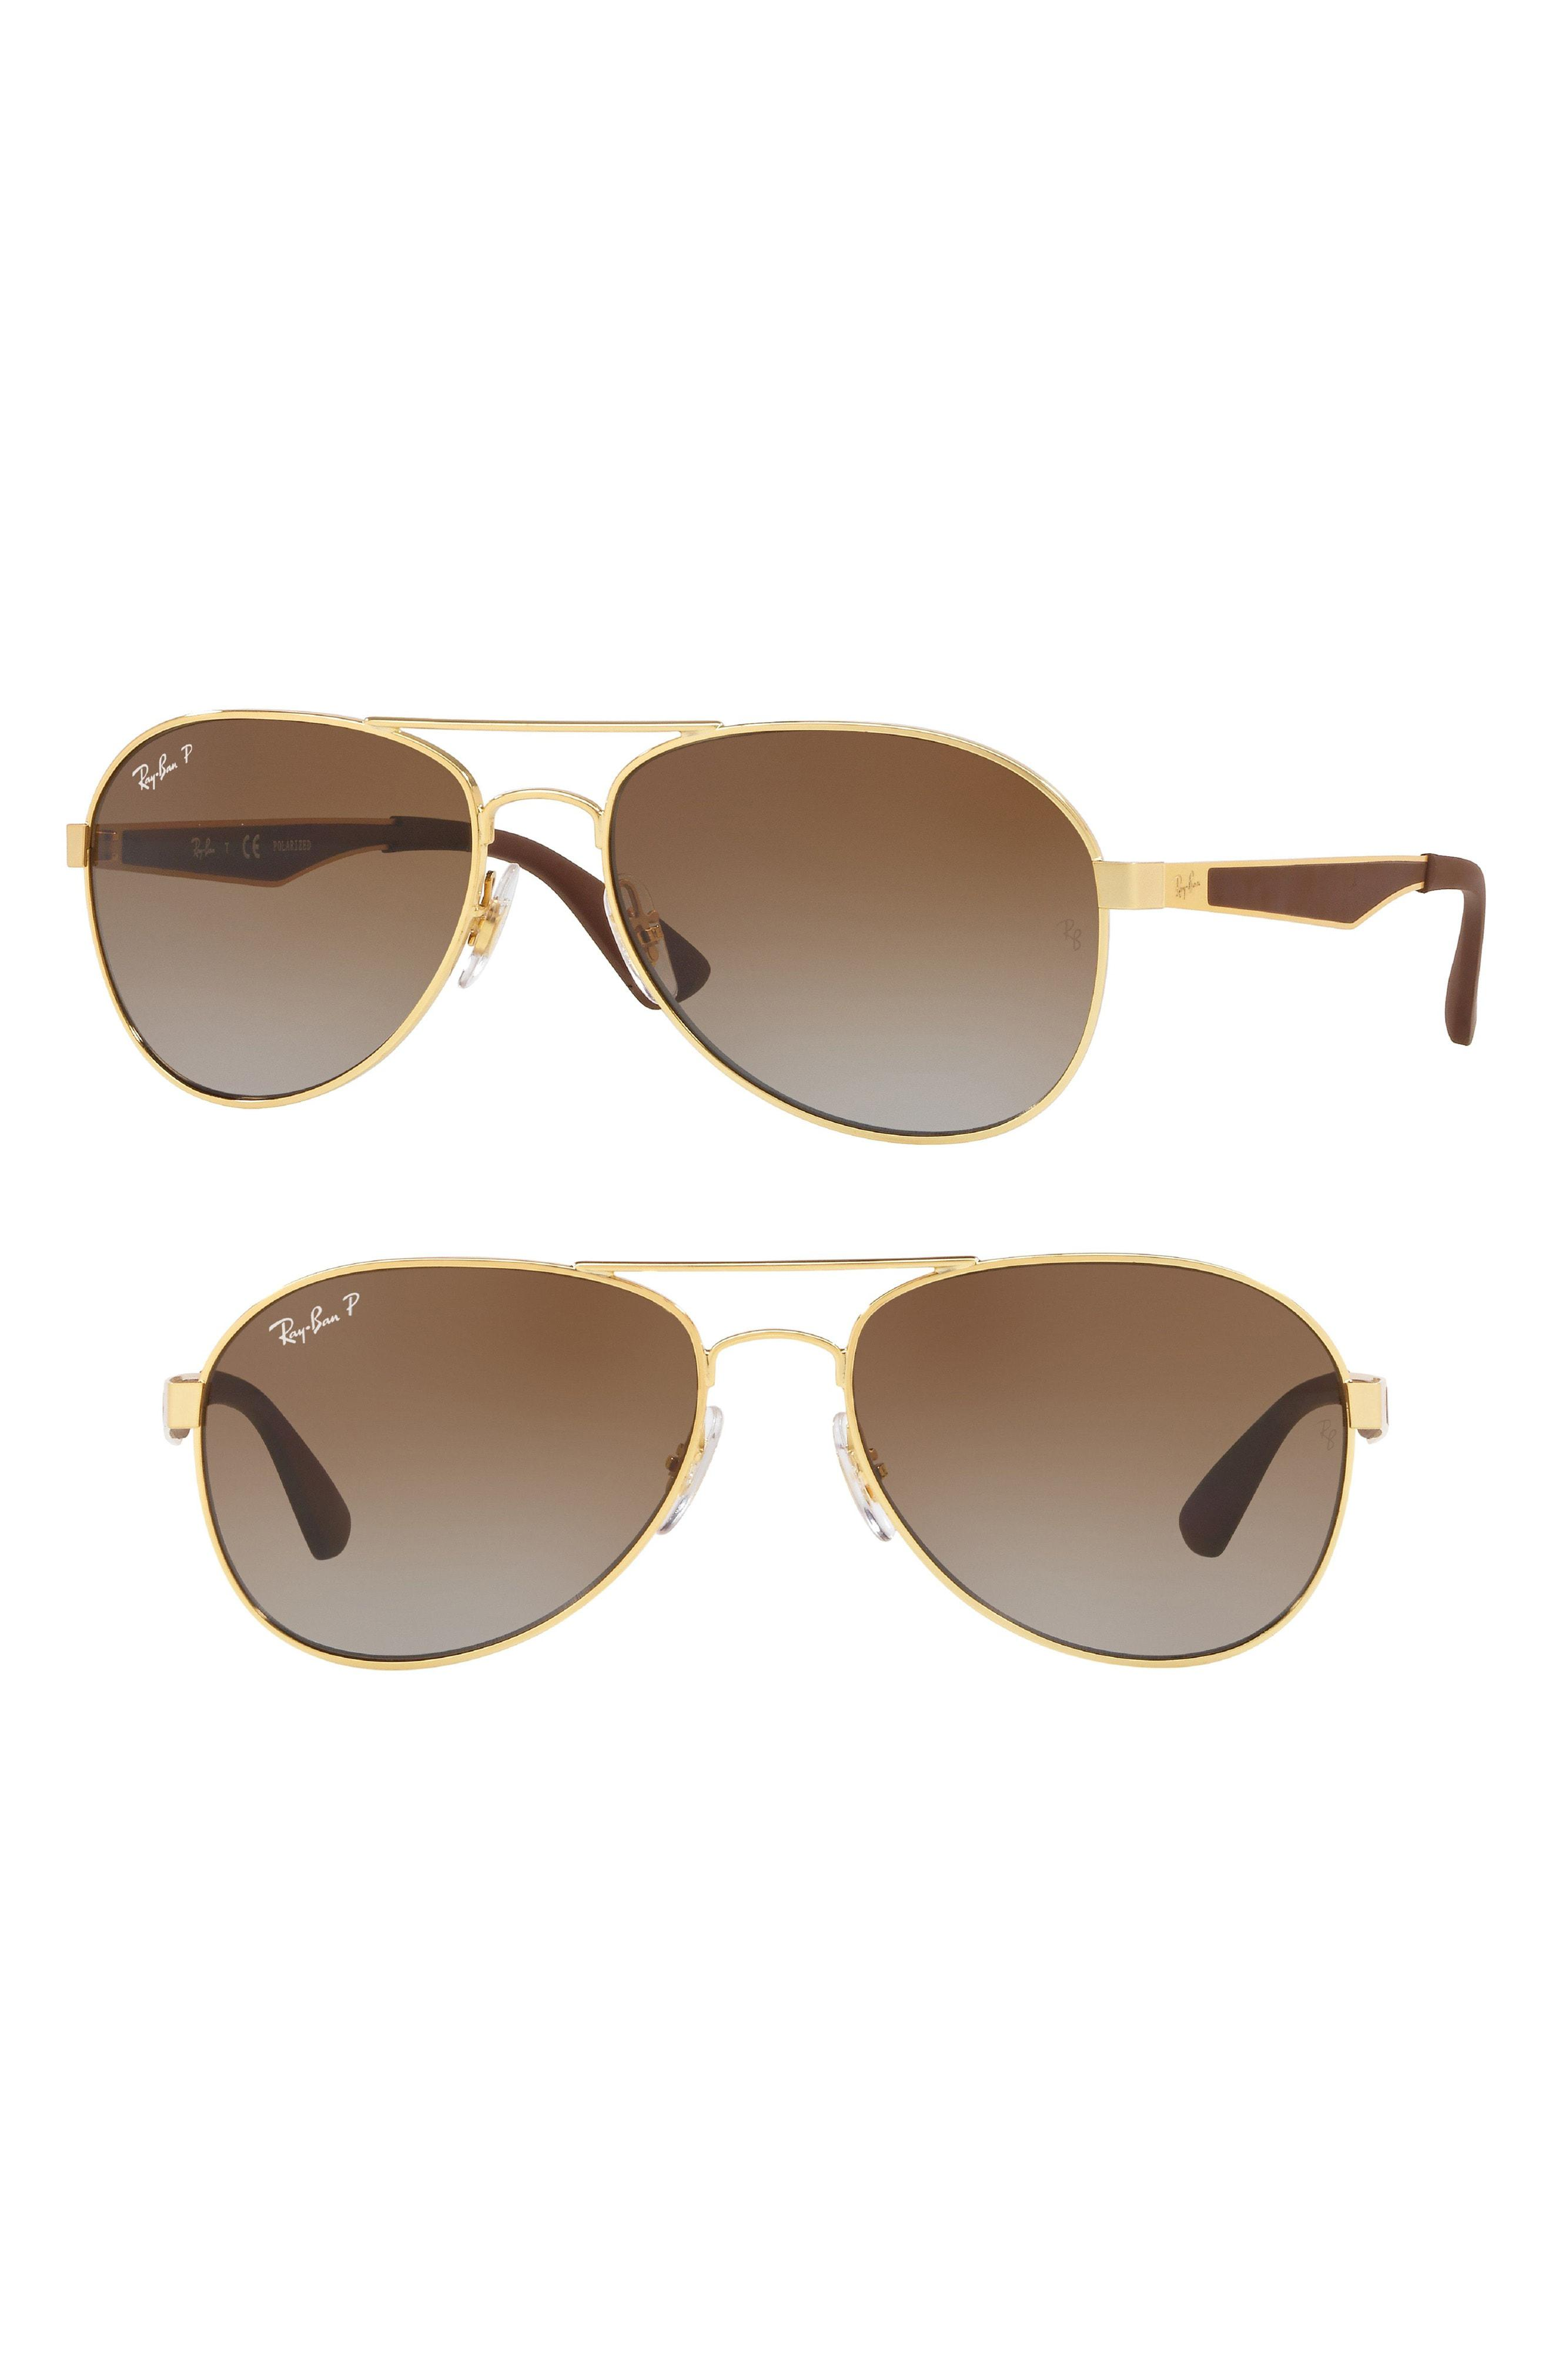 1d544ce2c7ef Lyst - Ray-Ban Active Lifestyle 61mm Polarized Pilot Sunglasses in ...